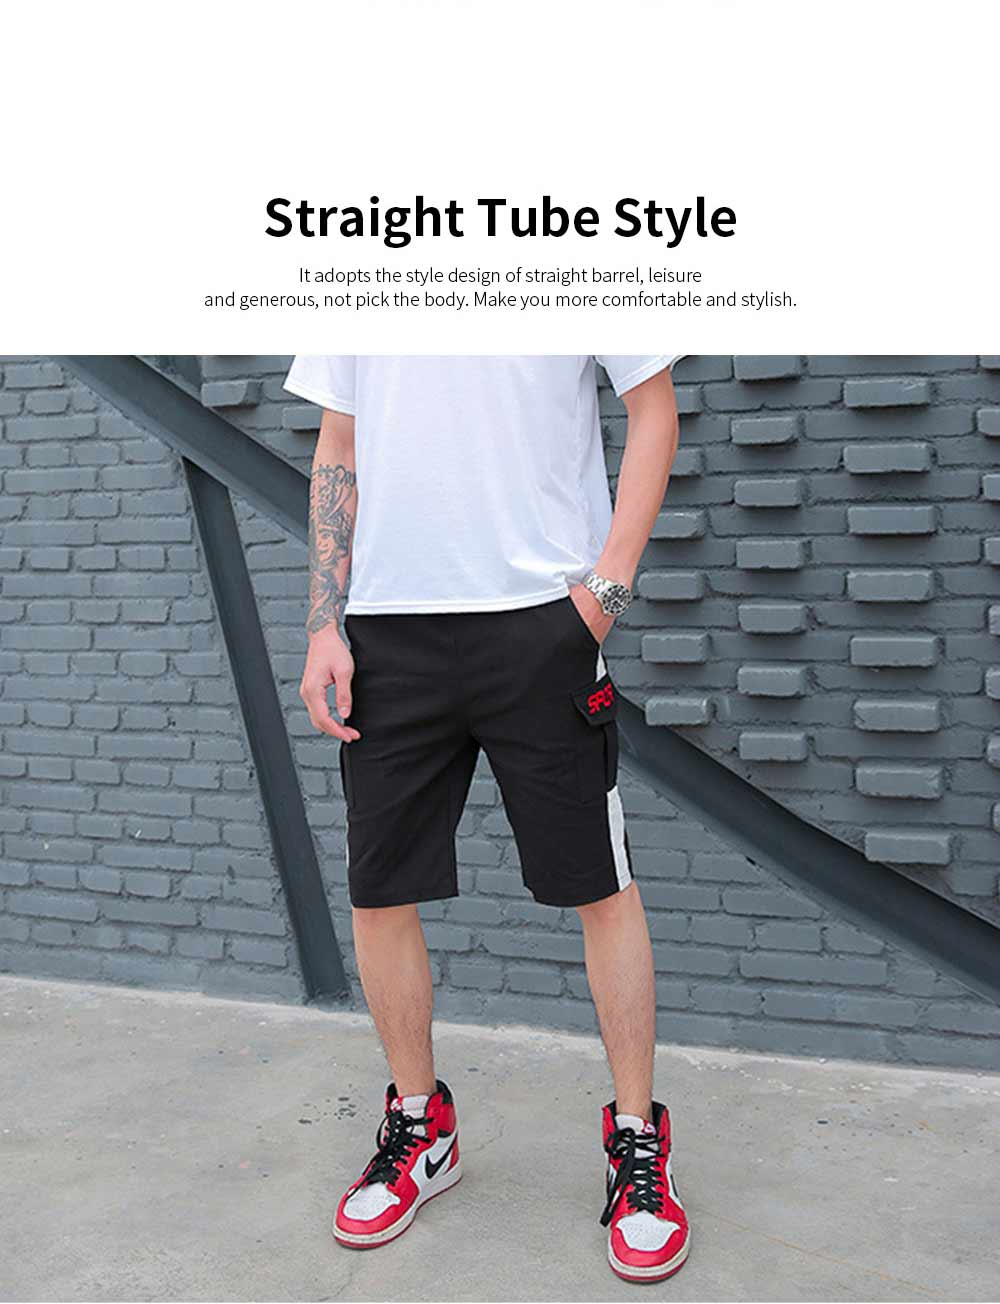 Men's Casual Overalls Shorts Students' Five-Point Shorts New Fashion Pocket Pants For Summer 1